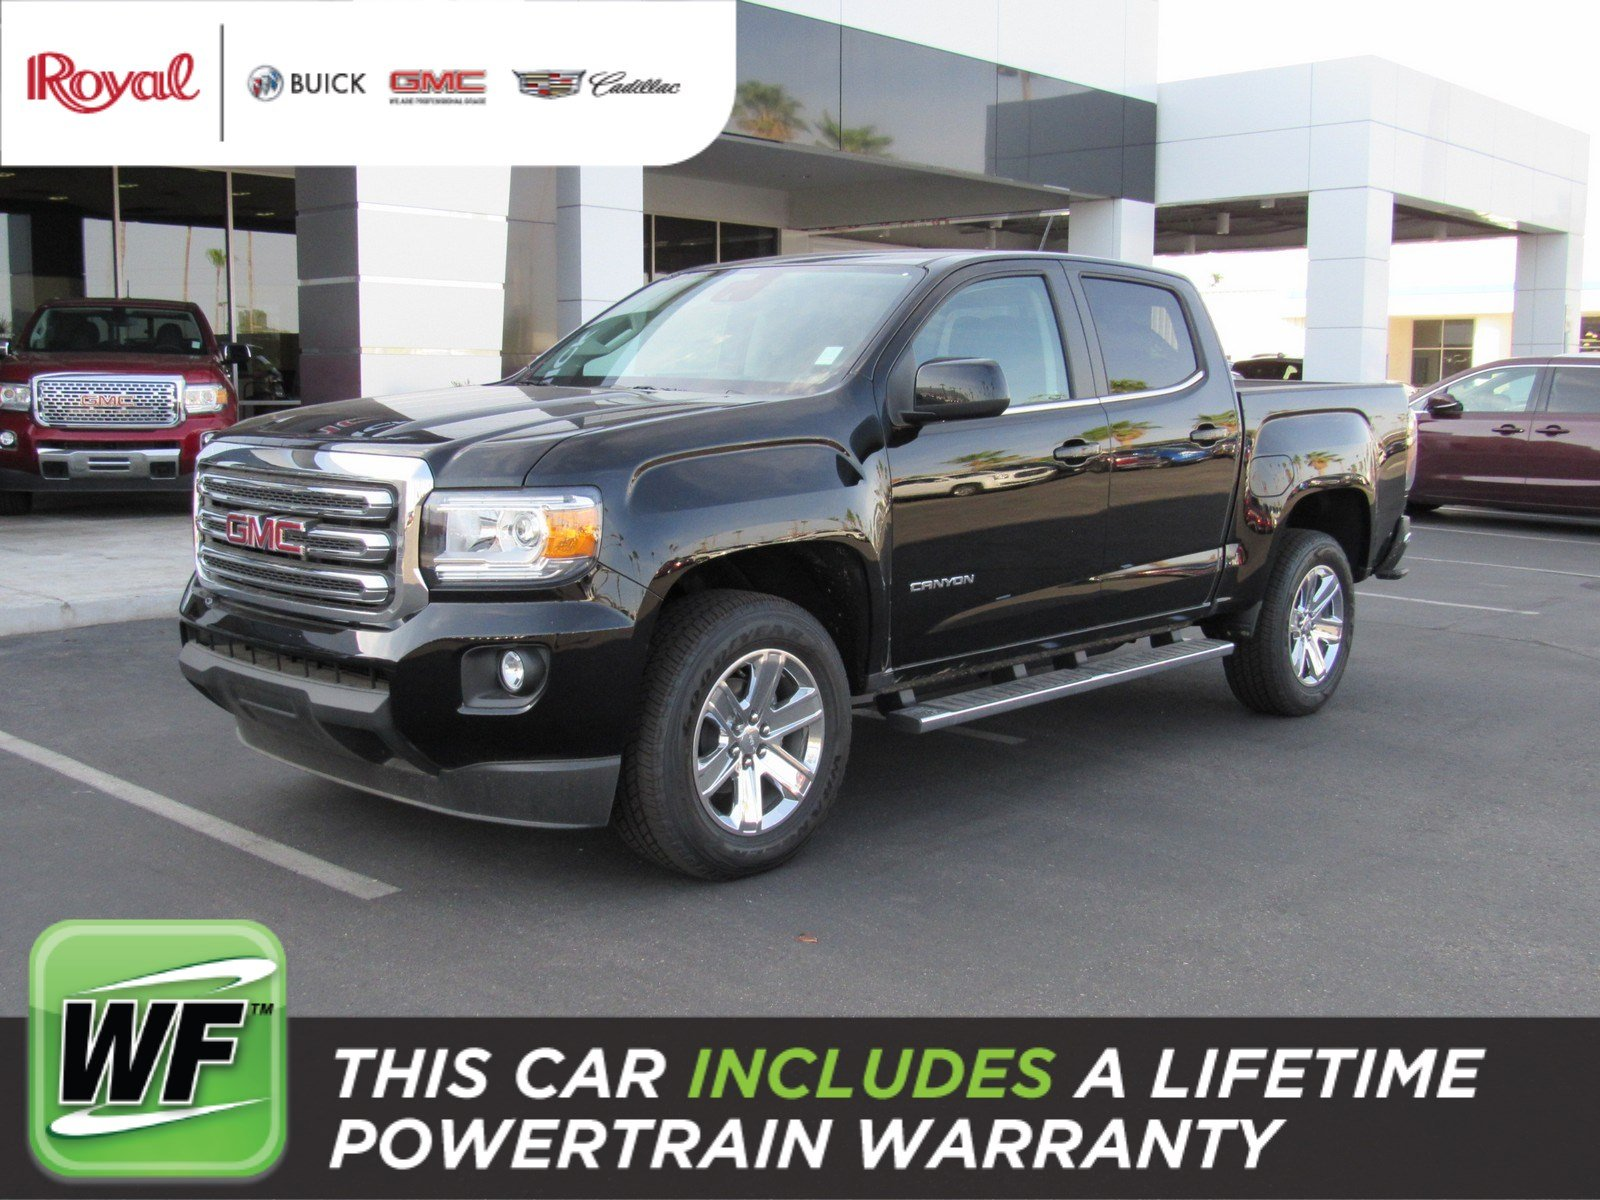 New 2018 GMC Canyon 2WD SLE Crew Cab in Tucson G4183